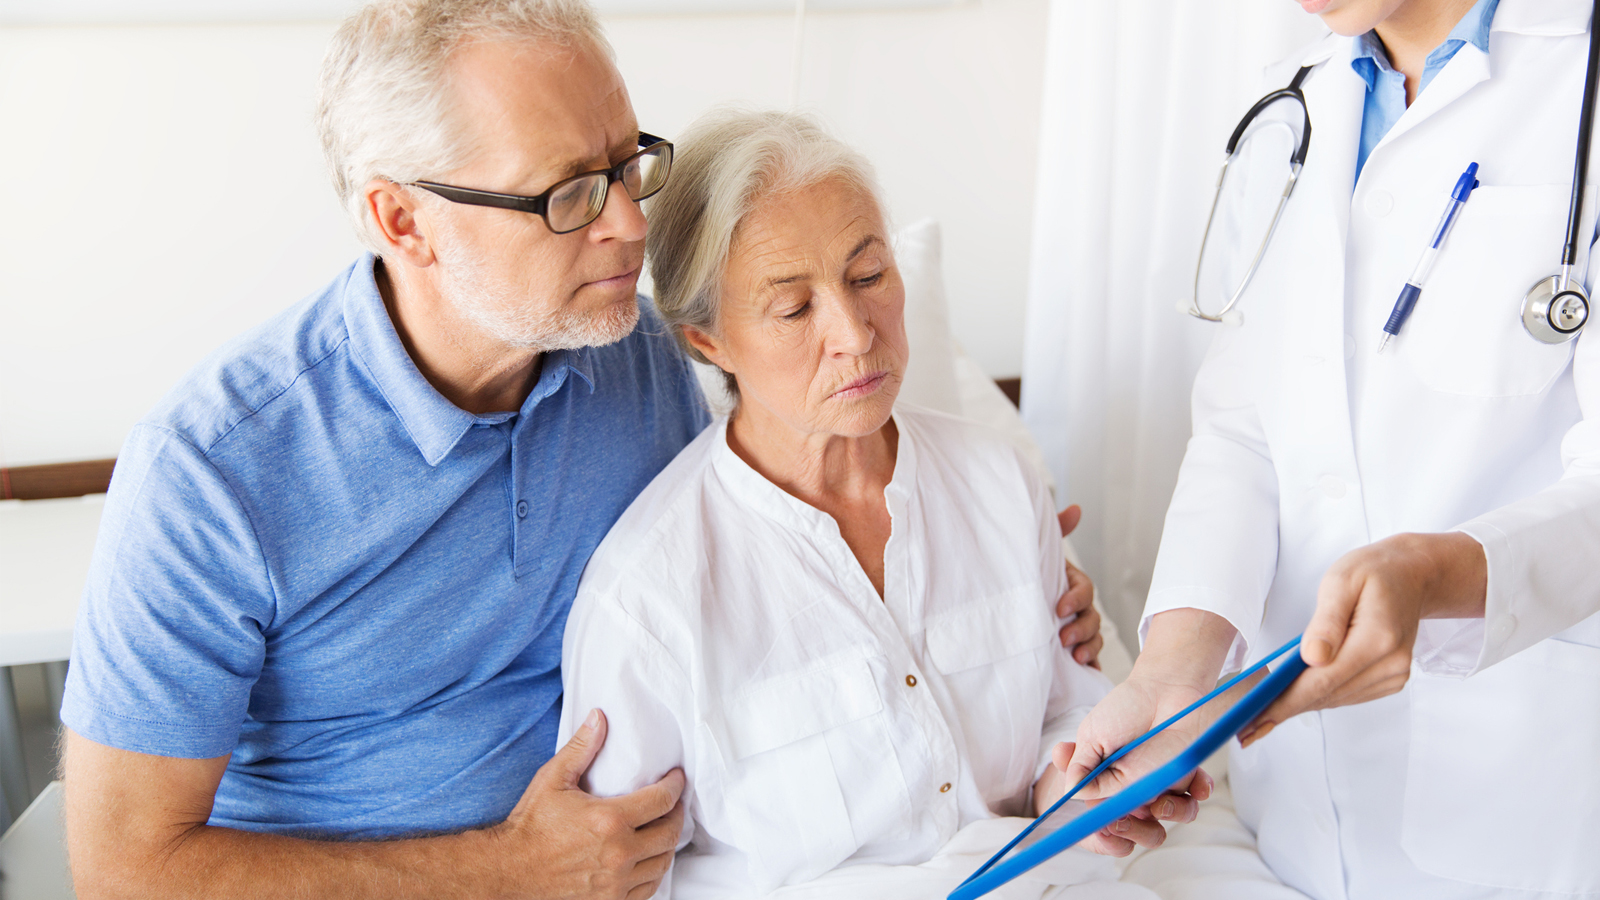 Questions to ask my doctor about IPF